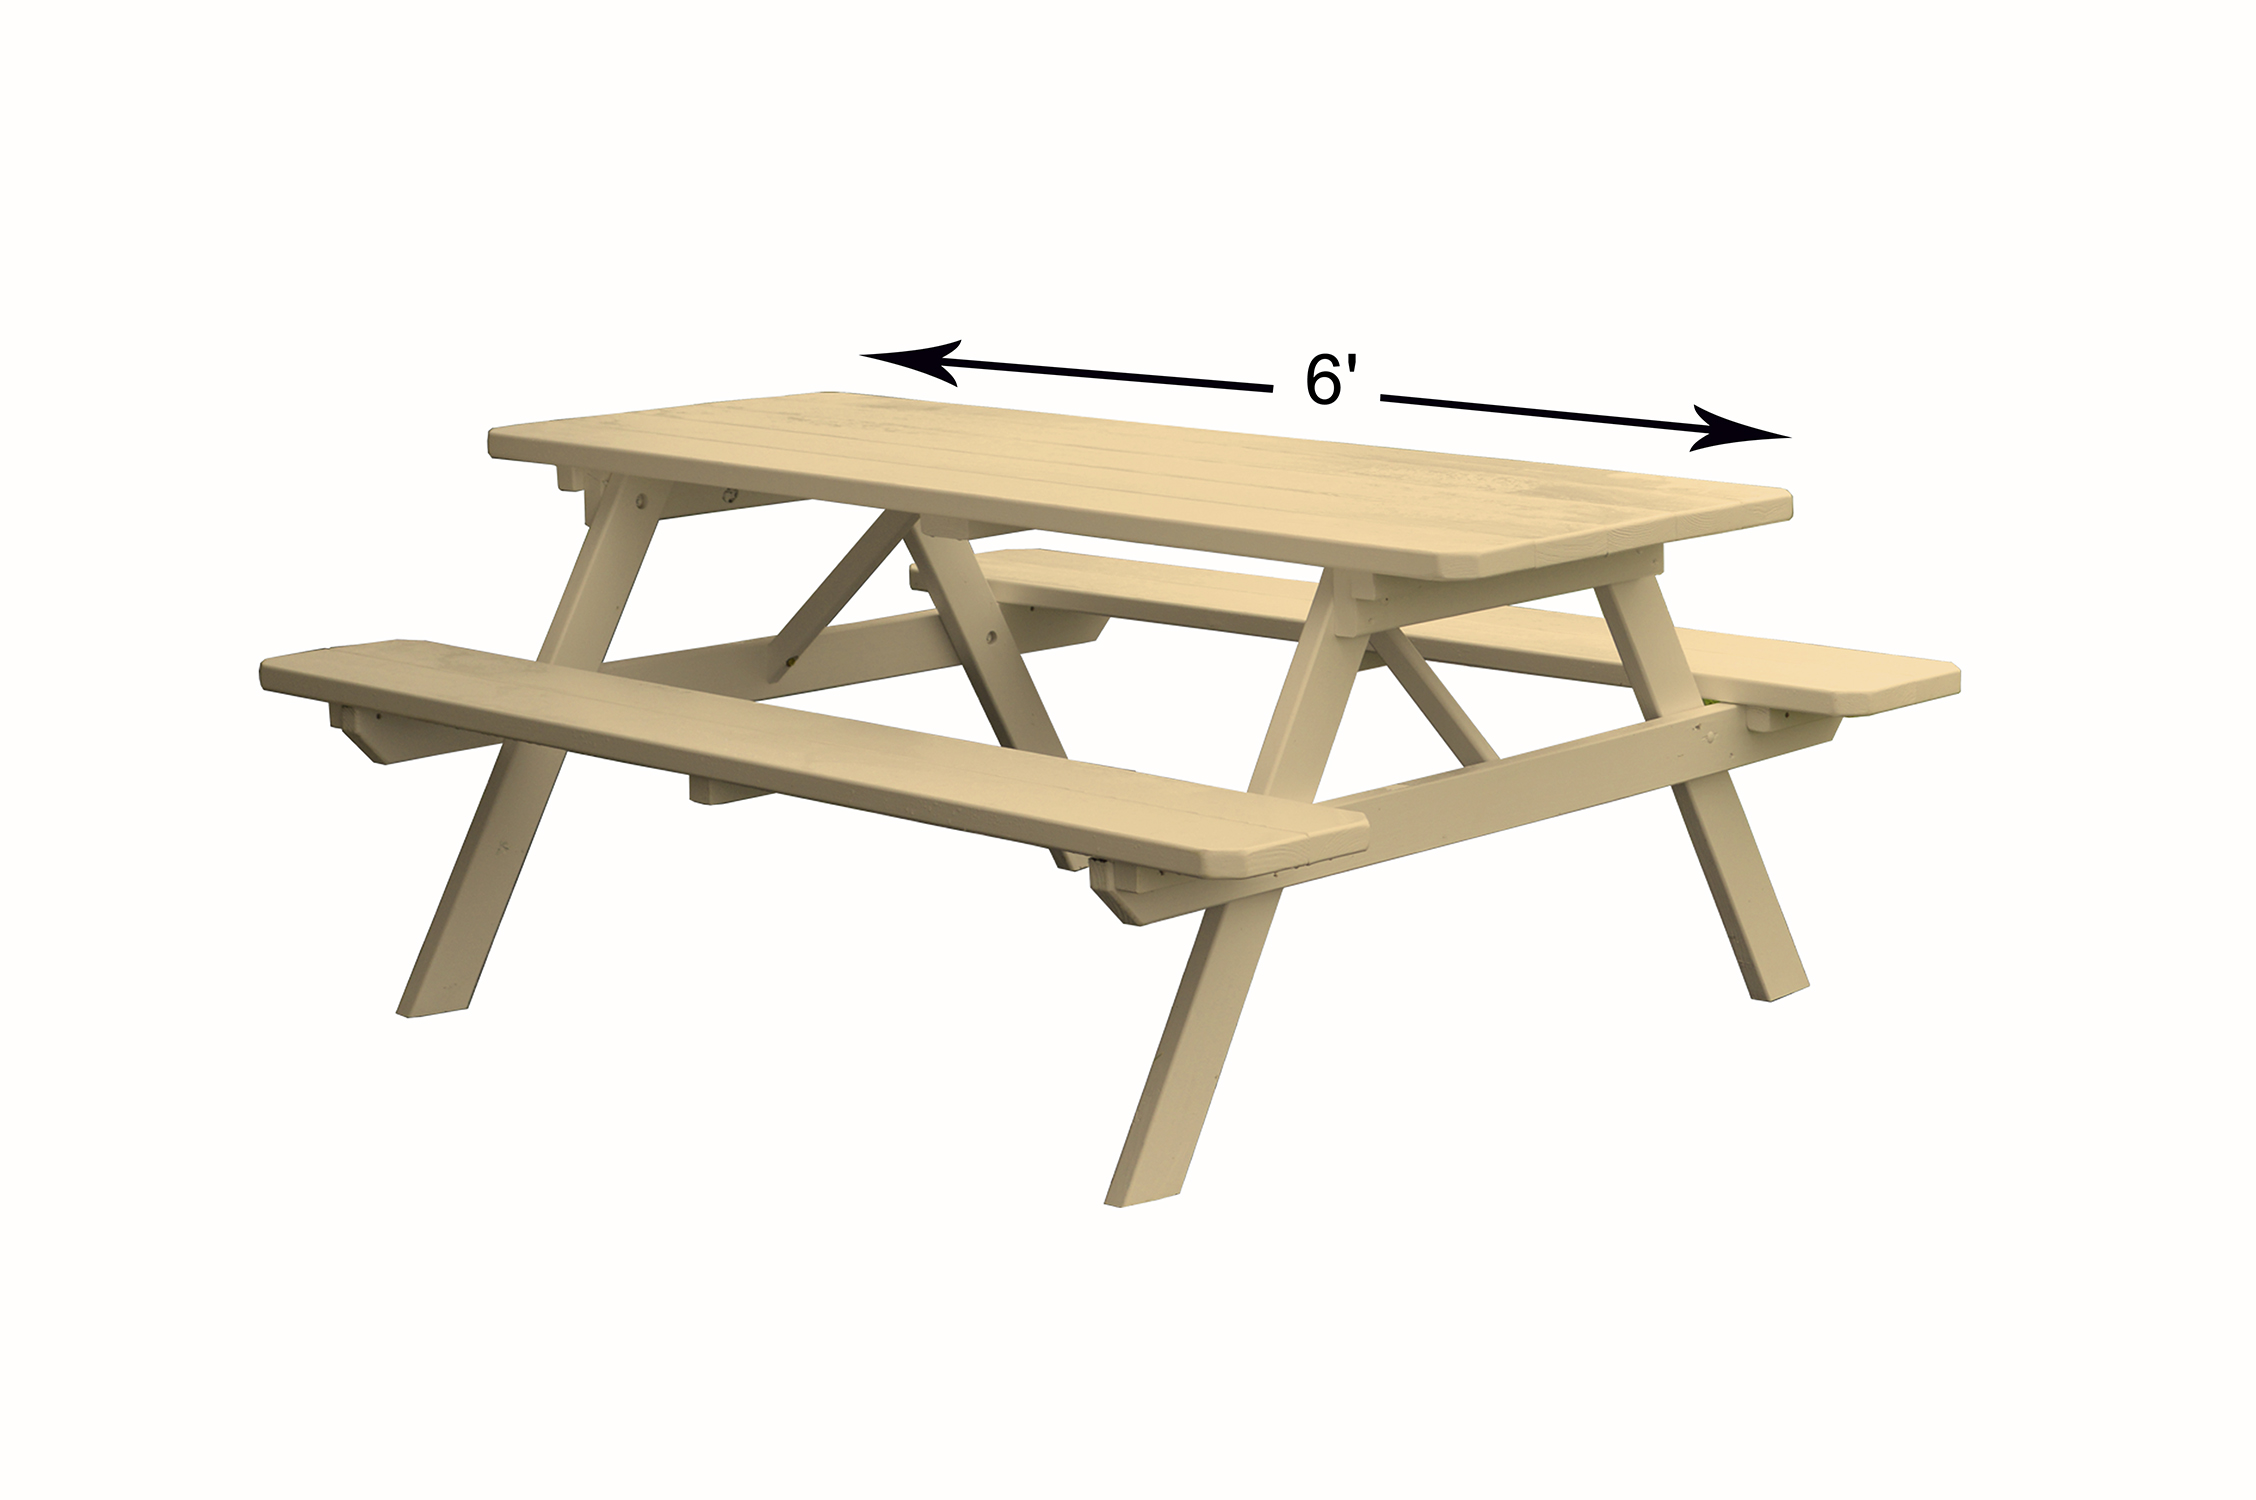 8 foot Wooden Picnic Table with Attached Wooden Benches by Supplier Generic